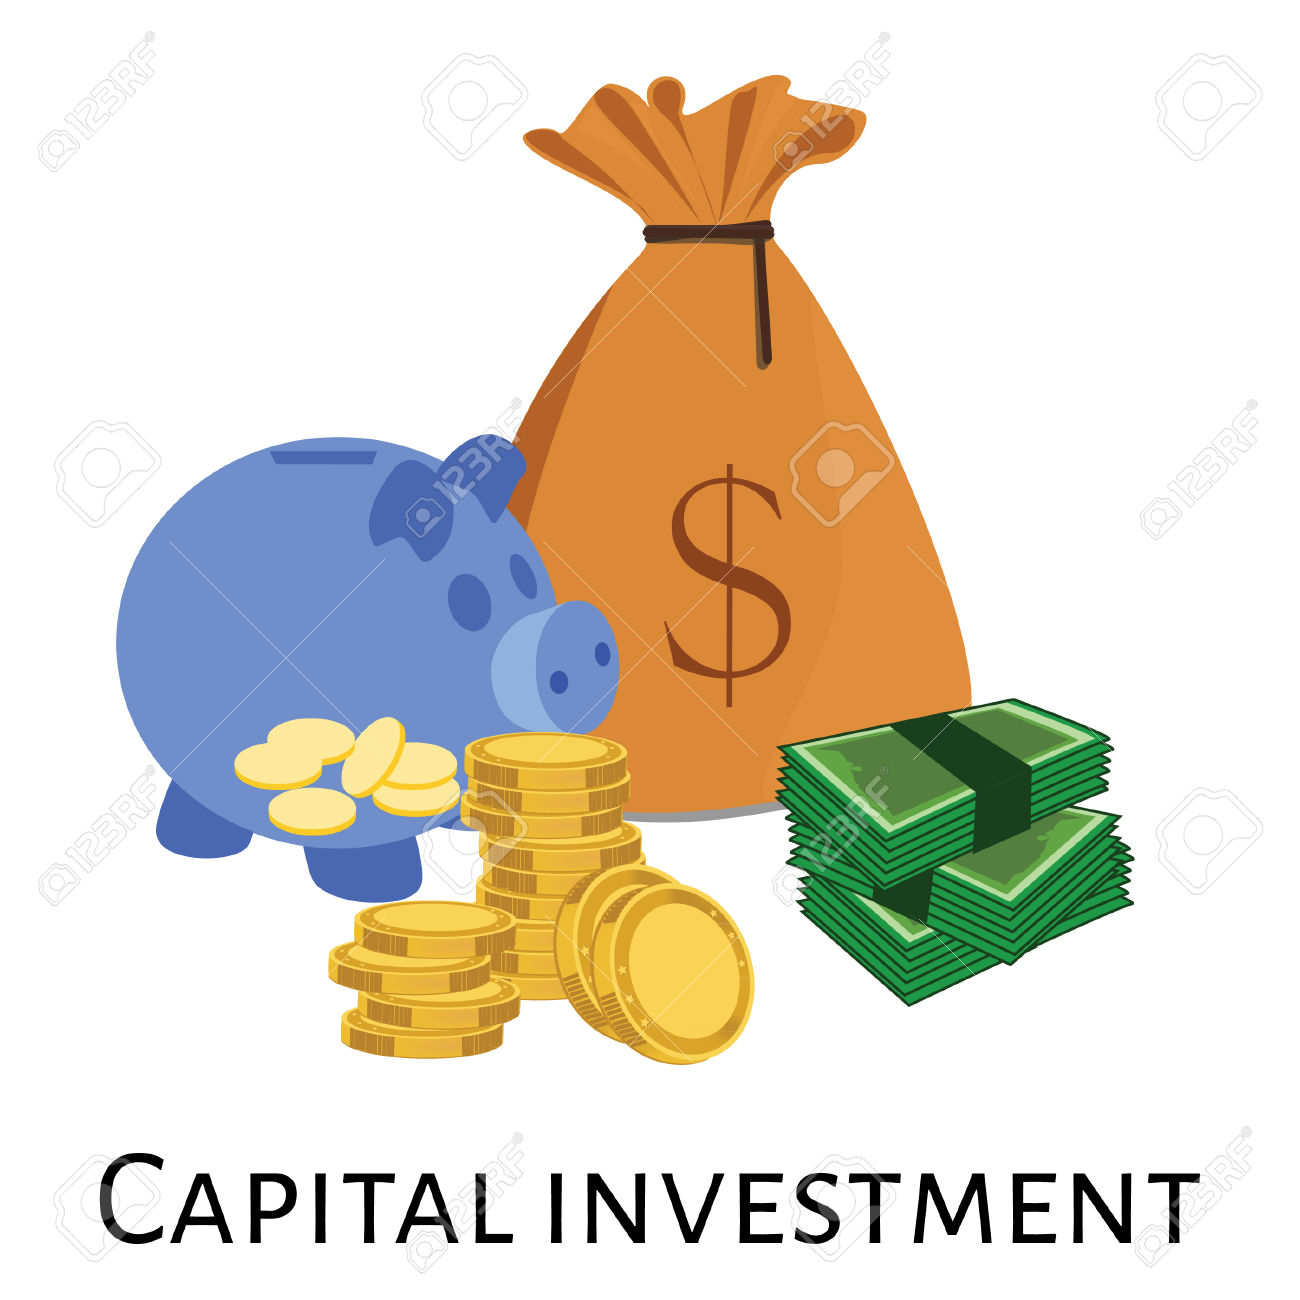 Vector Illustration Of Capital Investment. Investment Concept.